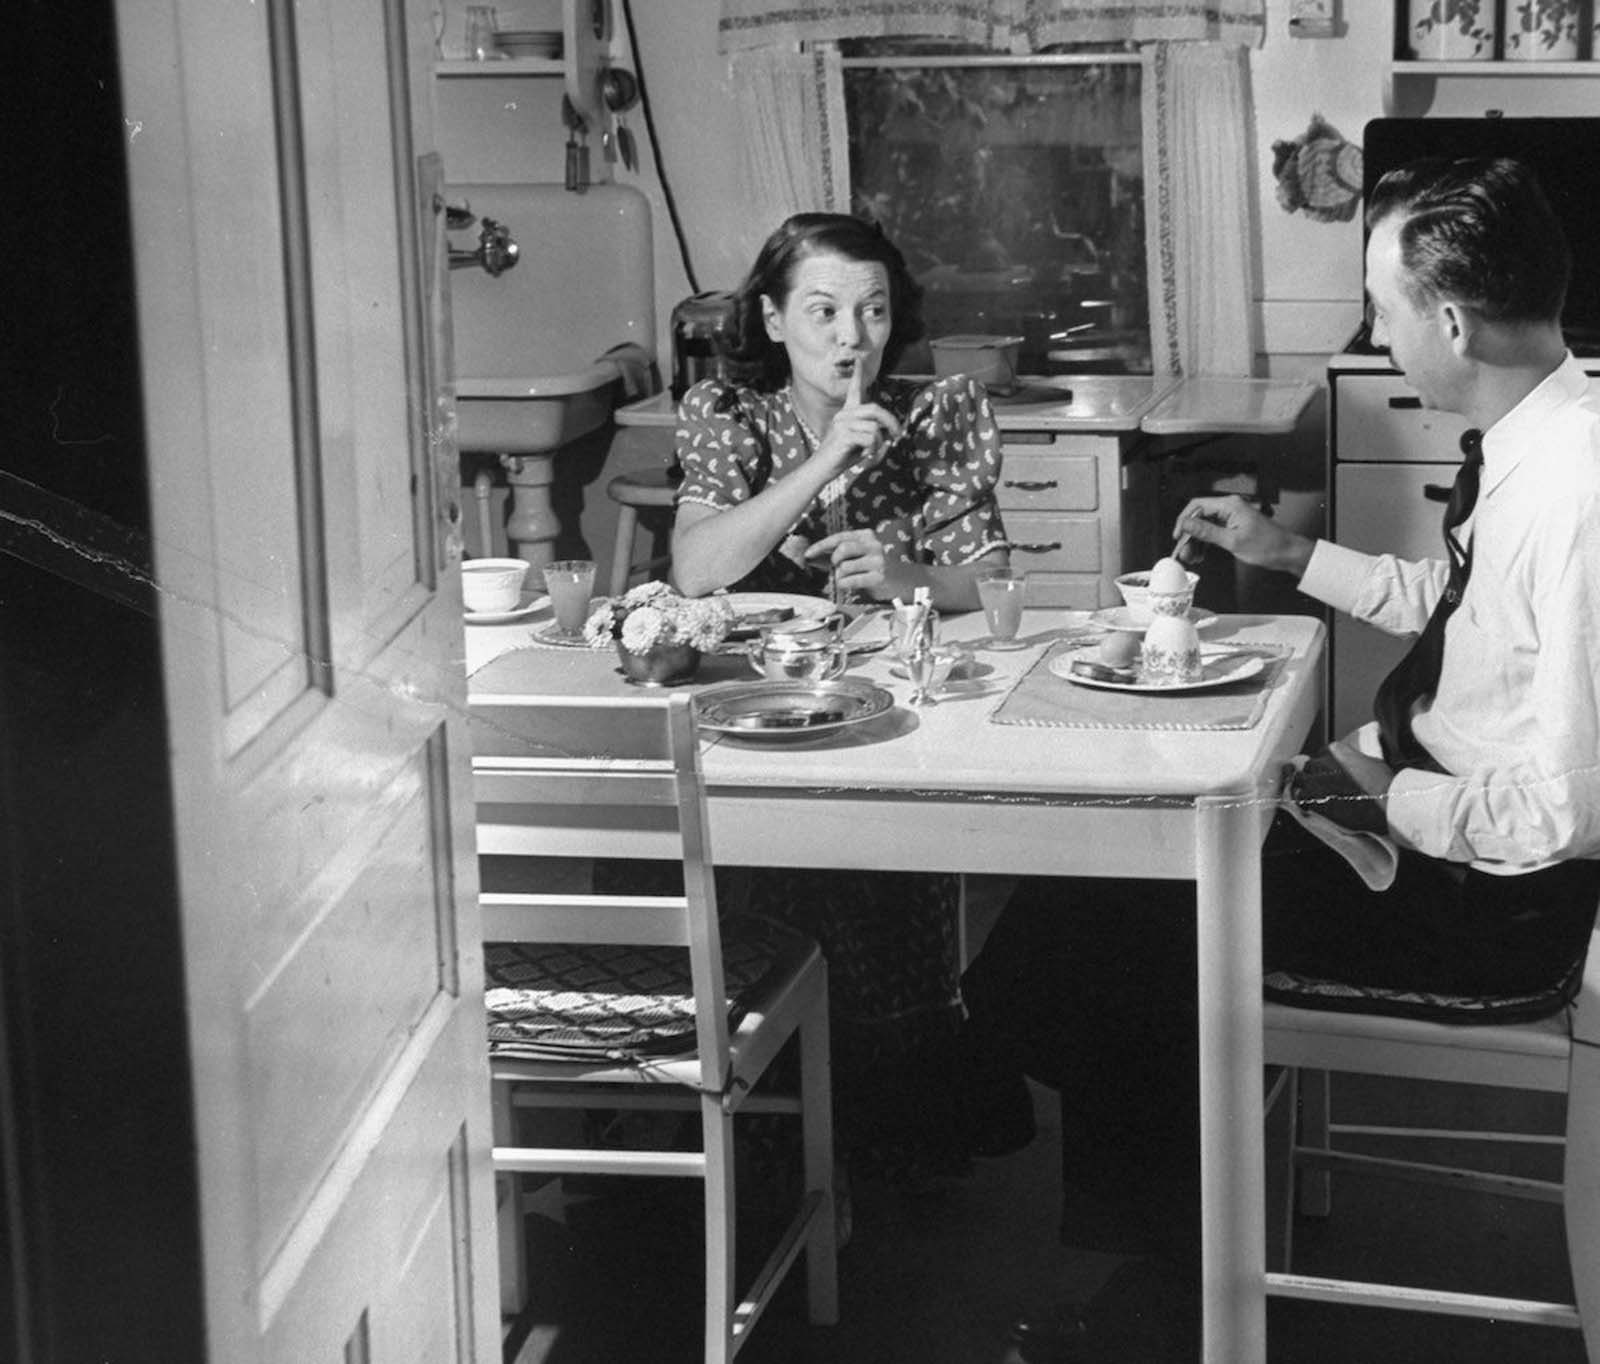 Jane shushing her husband Gilbert, as they sit having a quiet 6:30 a.m. breakfast before their three kids wake up, in the kitchen at their home.